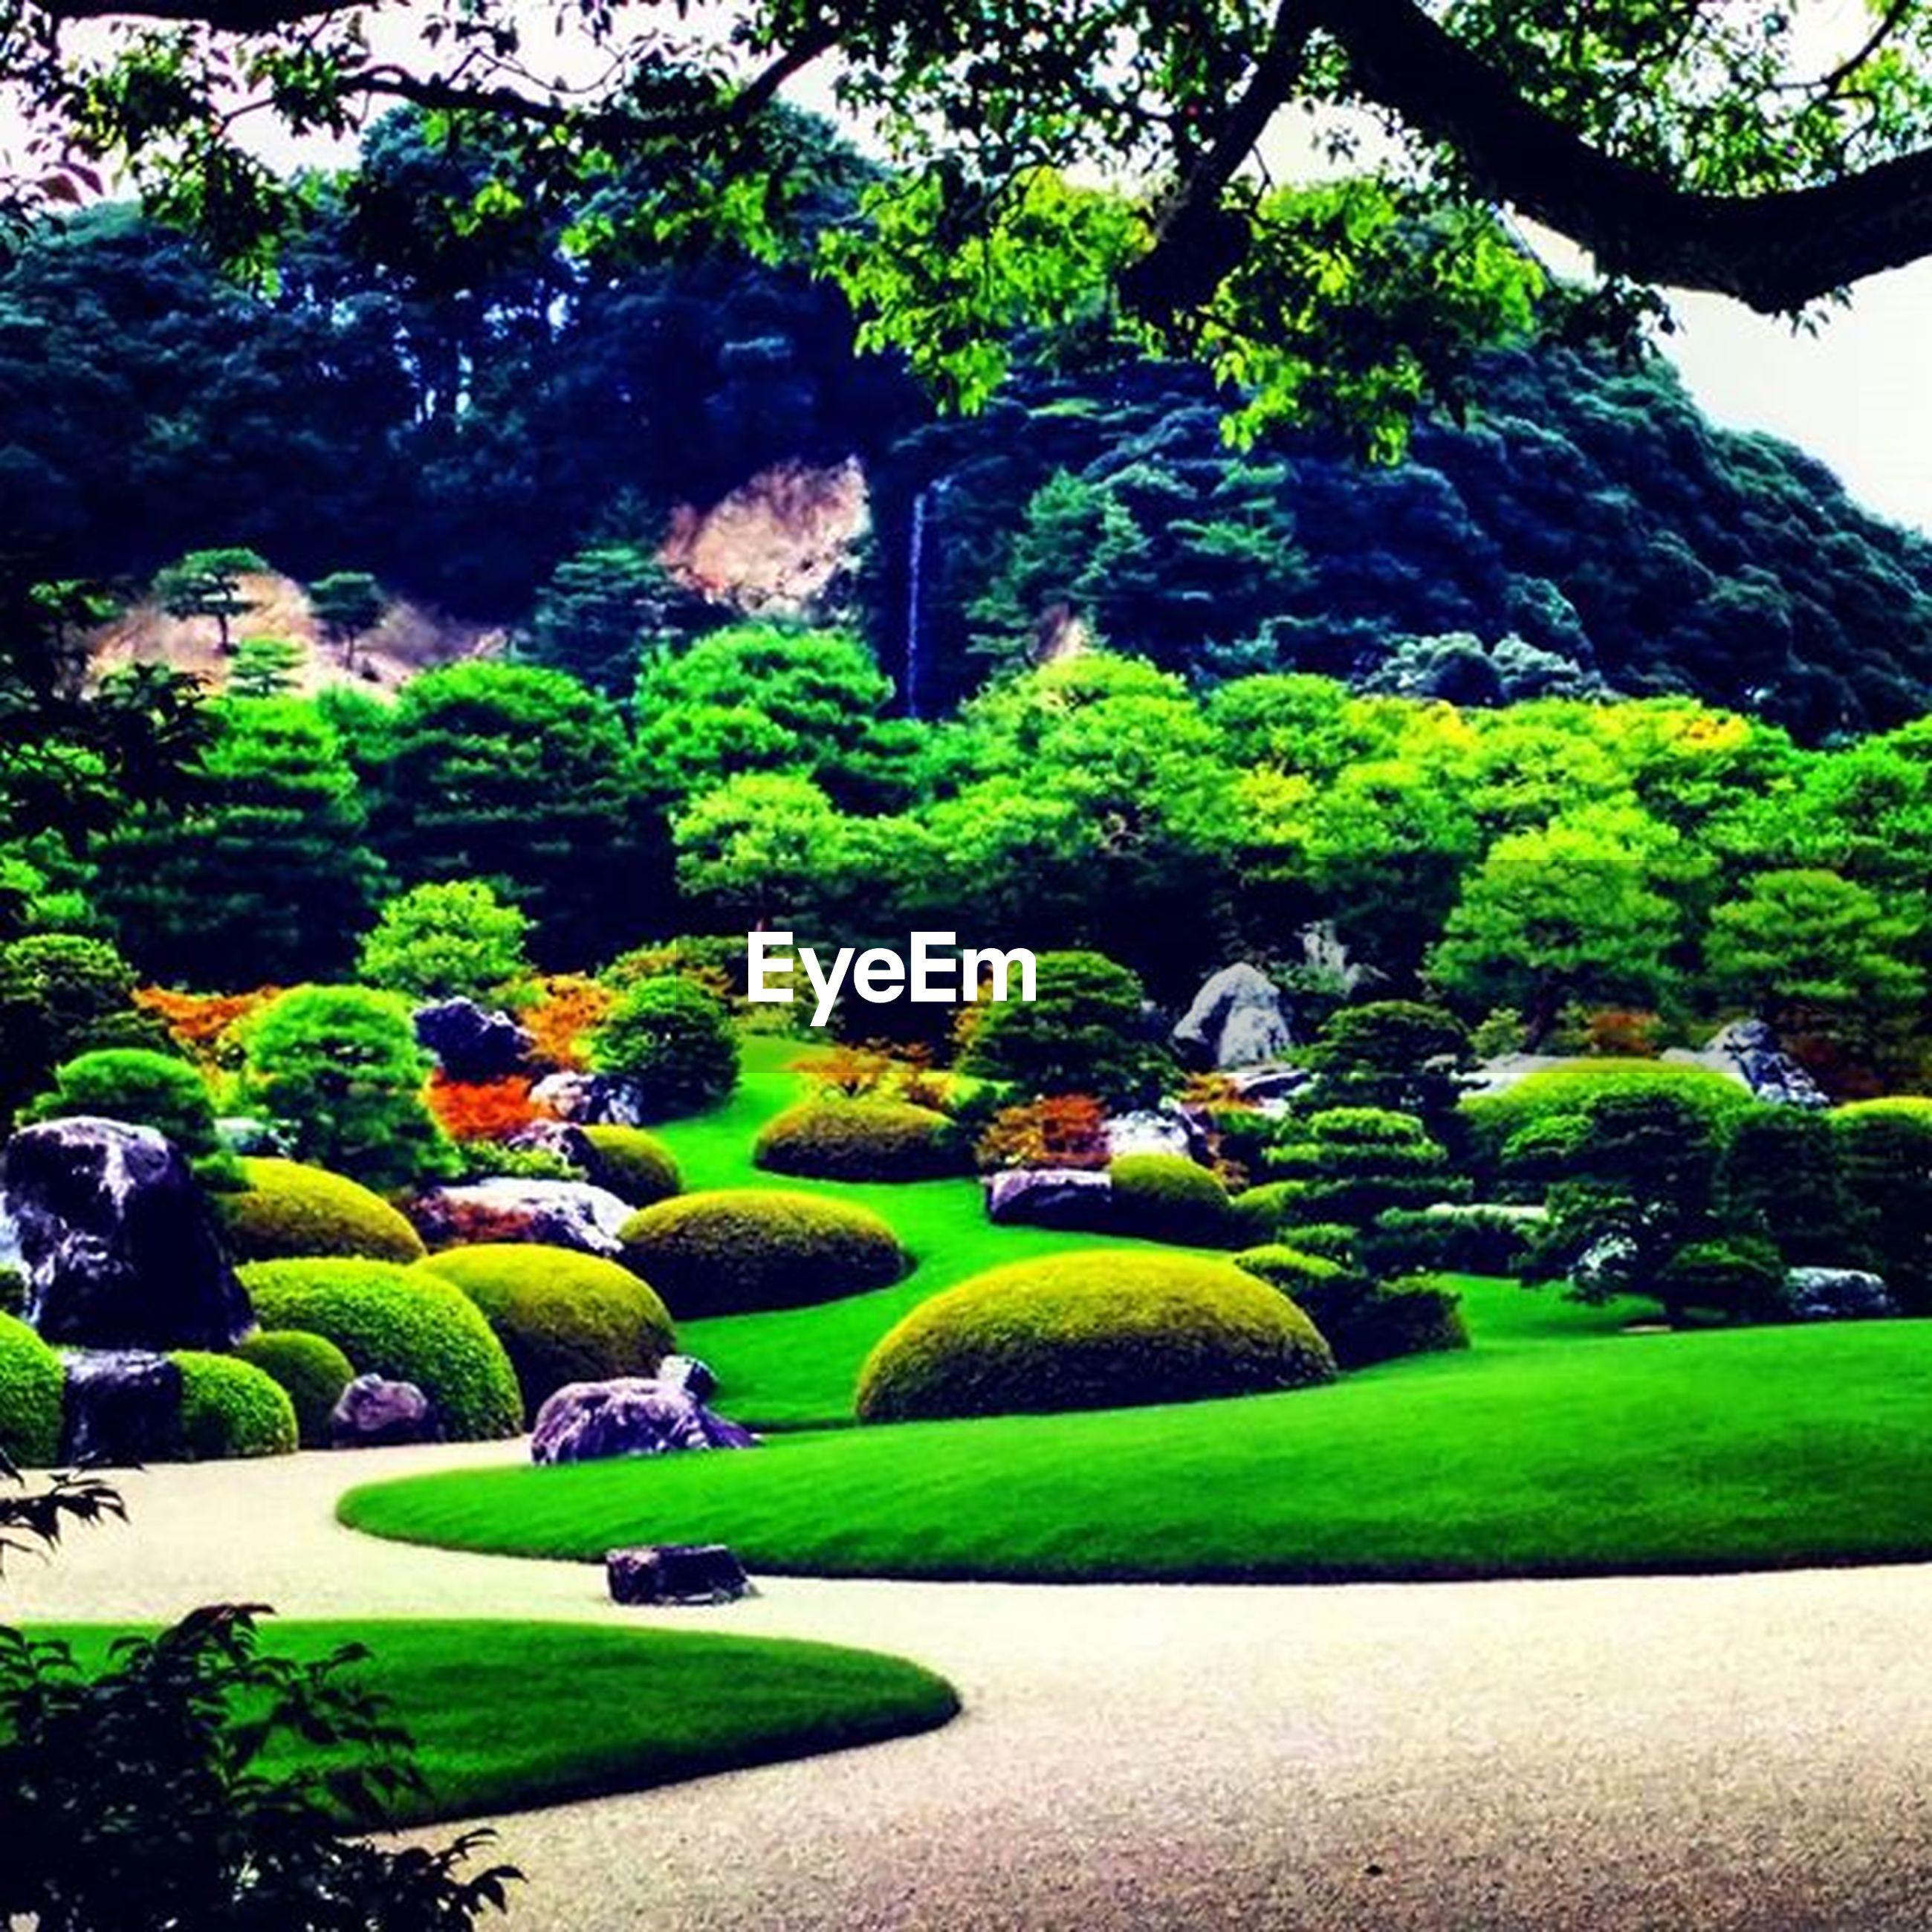 tree, green color, growth, park - man made space, nature, beauty in nature, tranquility, grass, formal garden, tranquil scene, park, sunlight, garden, plant, lawn, shadow, scenics, green, lush foliage, outdoors